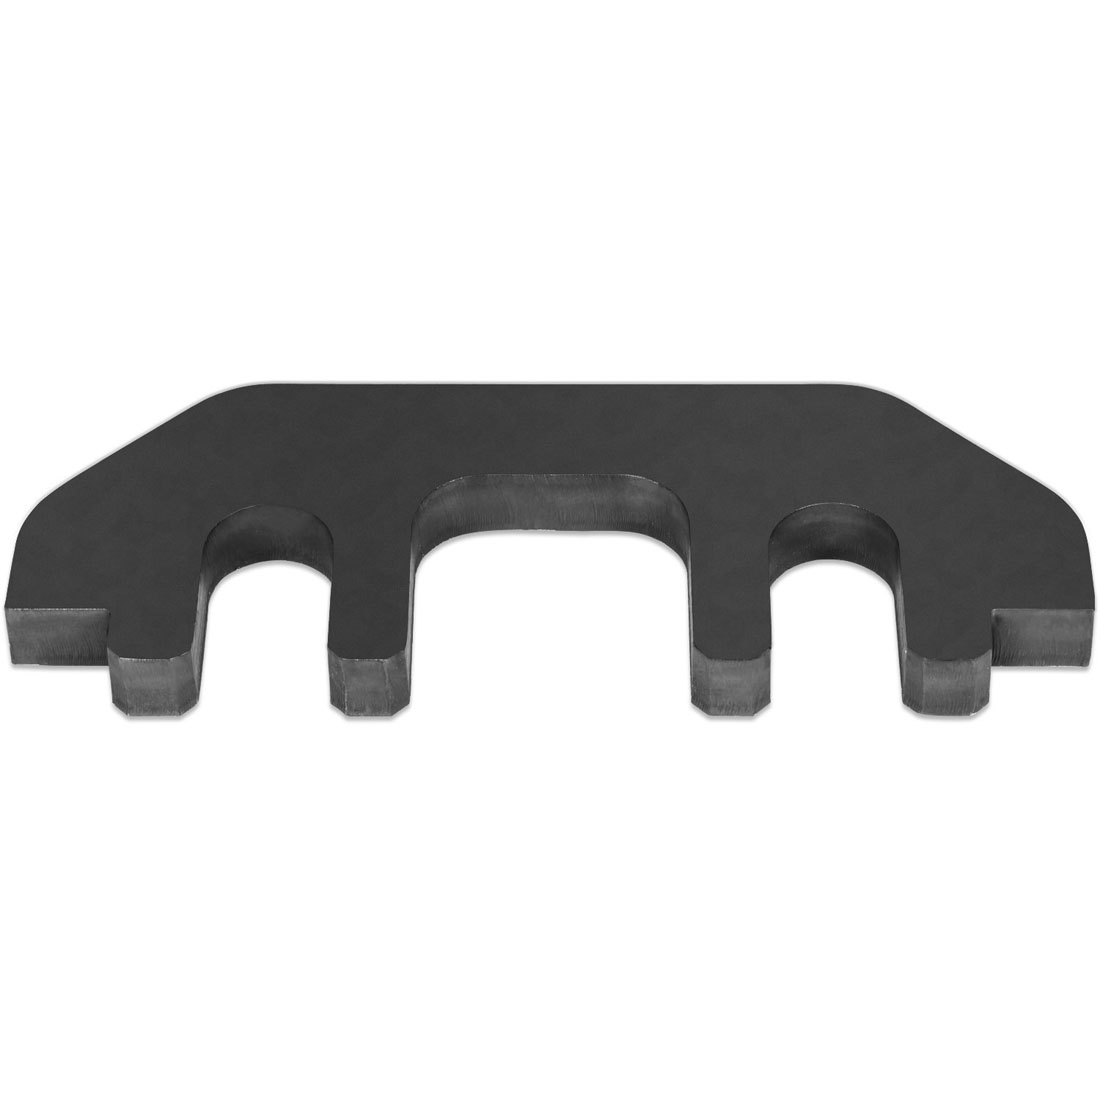 Camshaft Holding Timing Chain Tension Tool For Ford